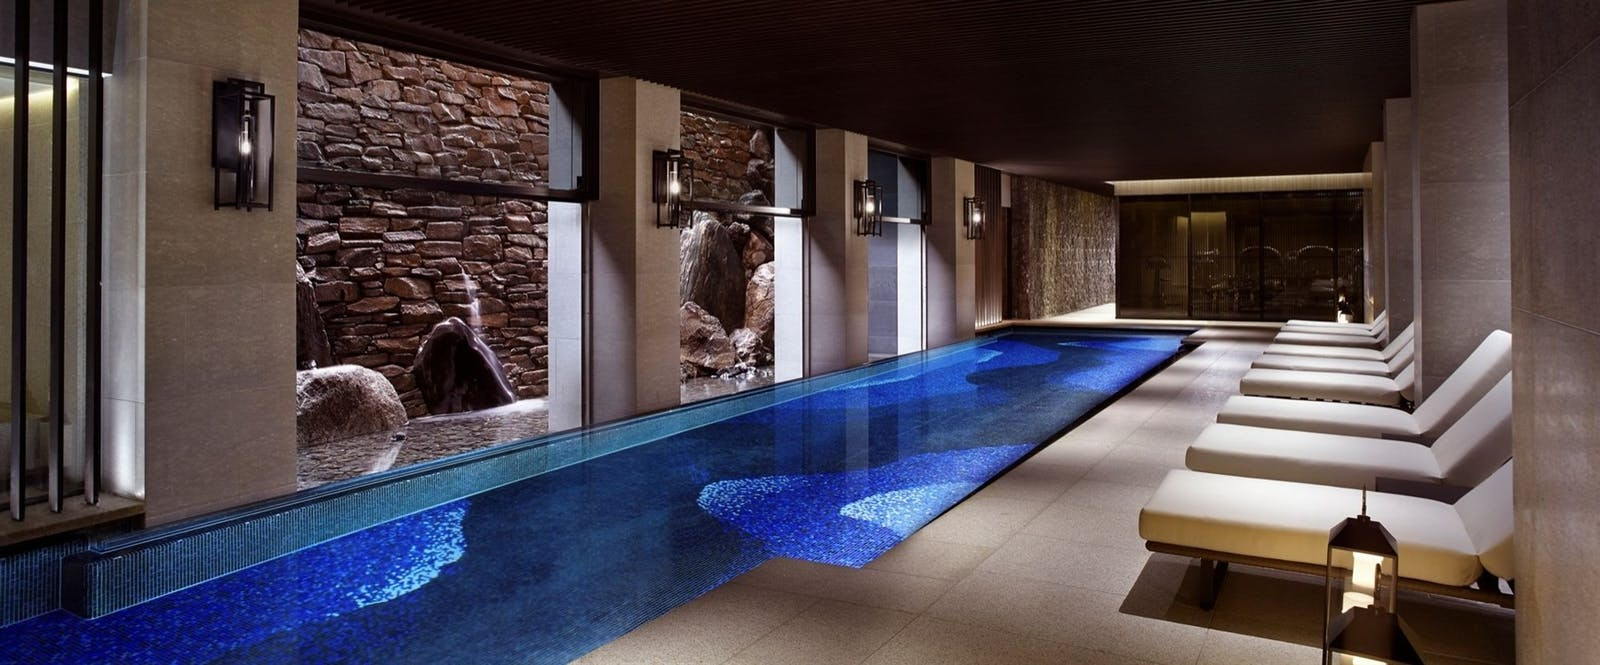 Spa Swimming Pool at The Ritz-Carlton Kyoto, Japan